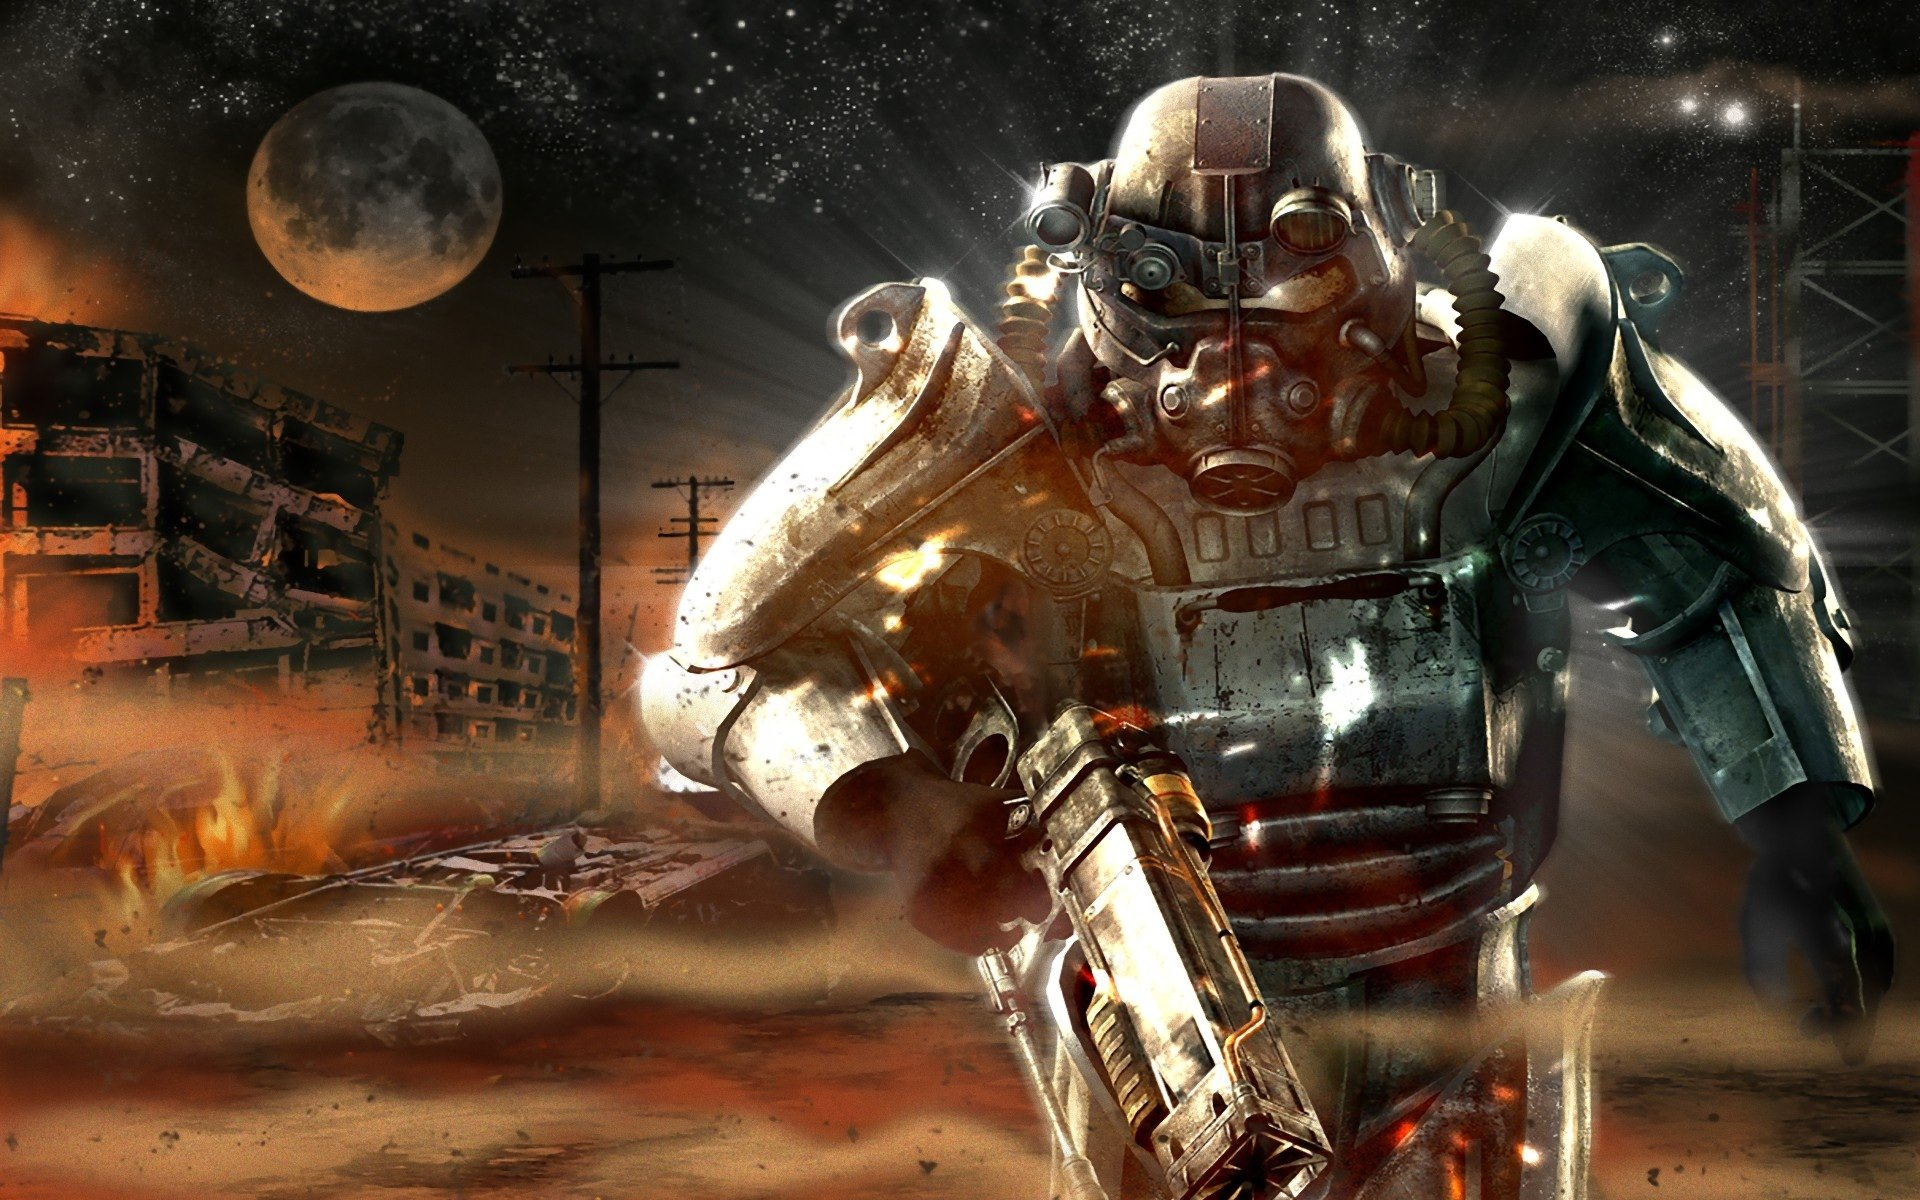 Fallout 3 wallpapers 1920x1200 desktop backgrounds free download fallout 3 wallpaper id315297 hd 1920x1200 for pc altavistaventures Gallery